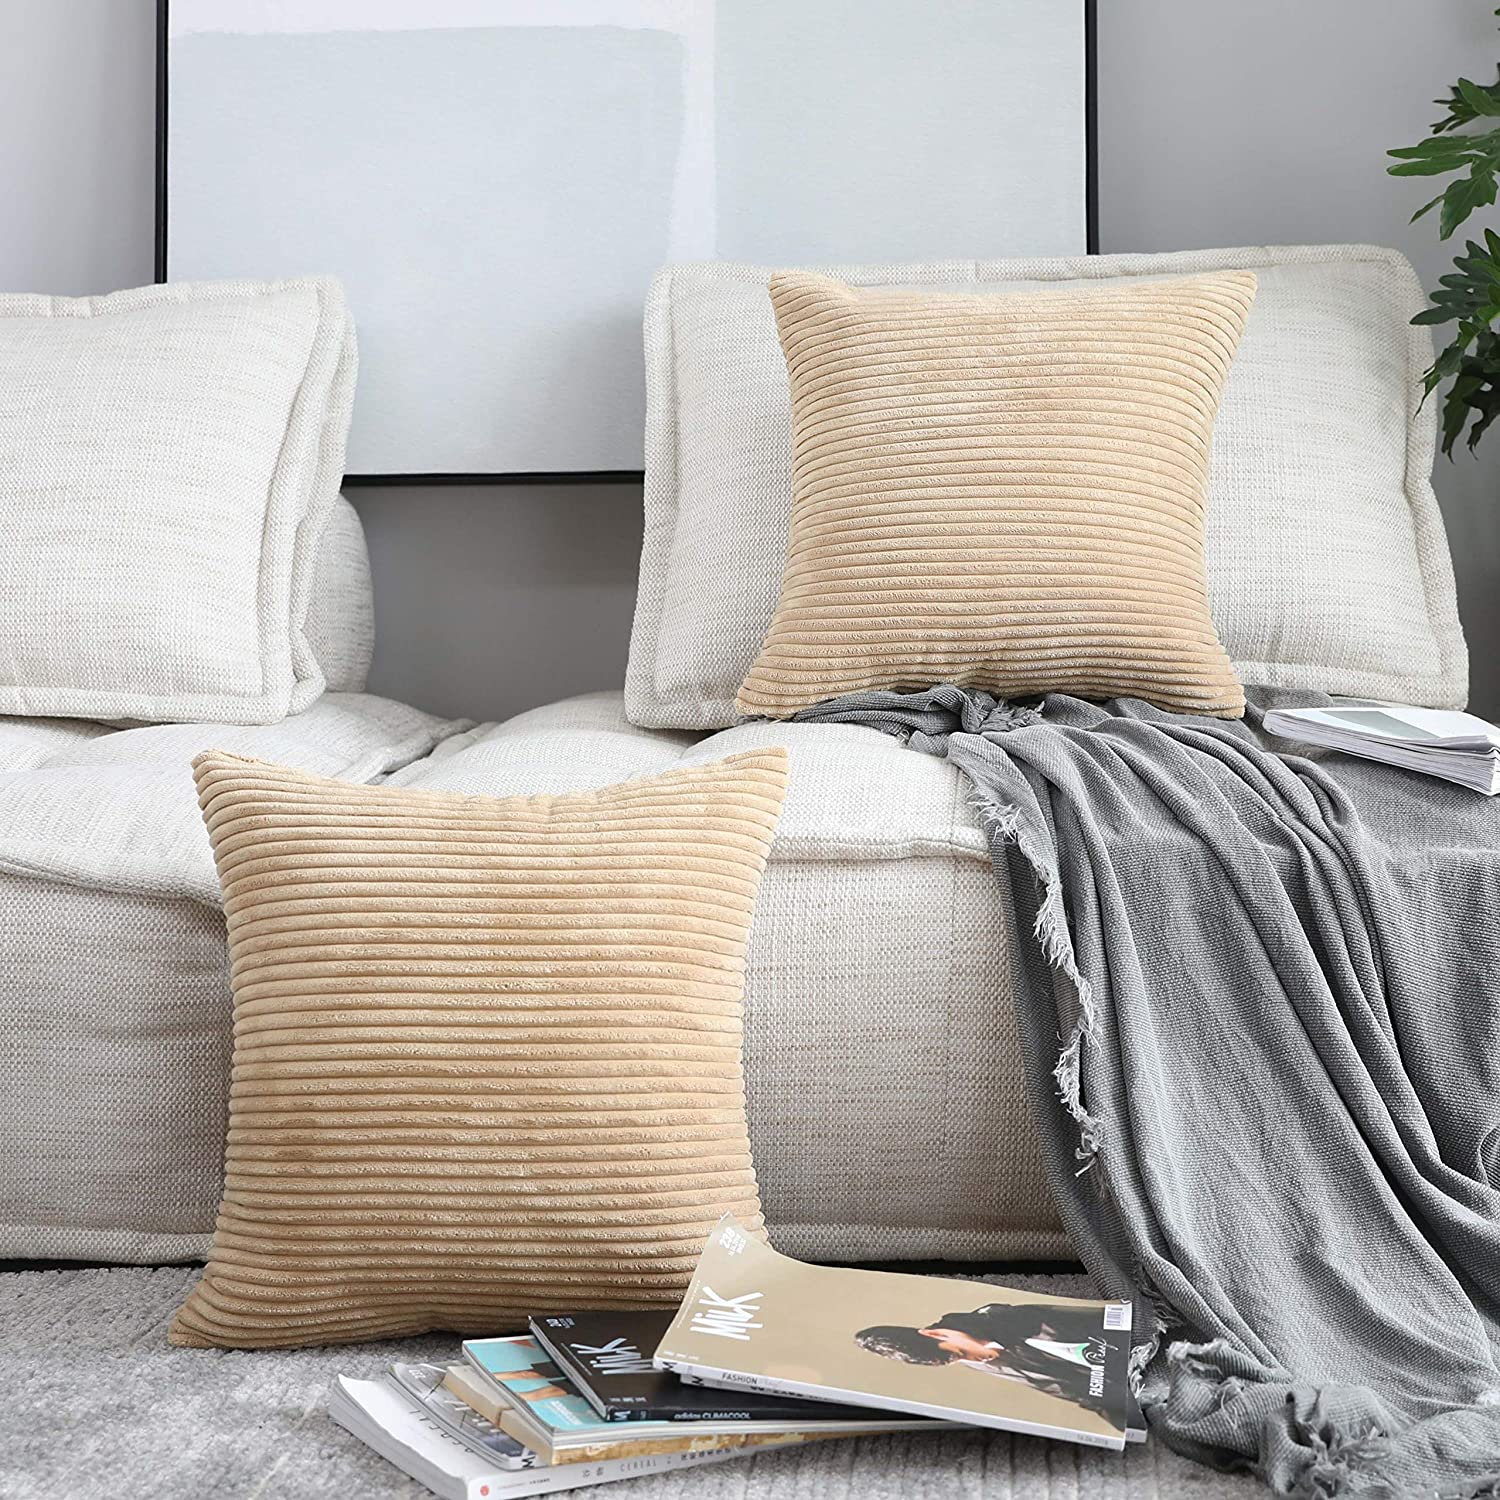 Home Brilliant Decor Supersoft Striped Velvet Corduroy Decorative Throw Toss Pillowcase Cushion Cover for Chair, Taupe, 2 Pack(50x50 cm, 20inch)